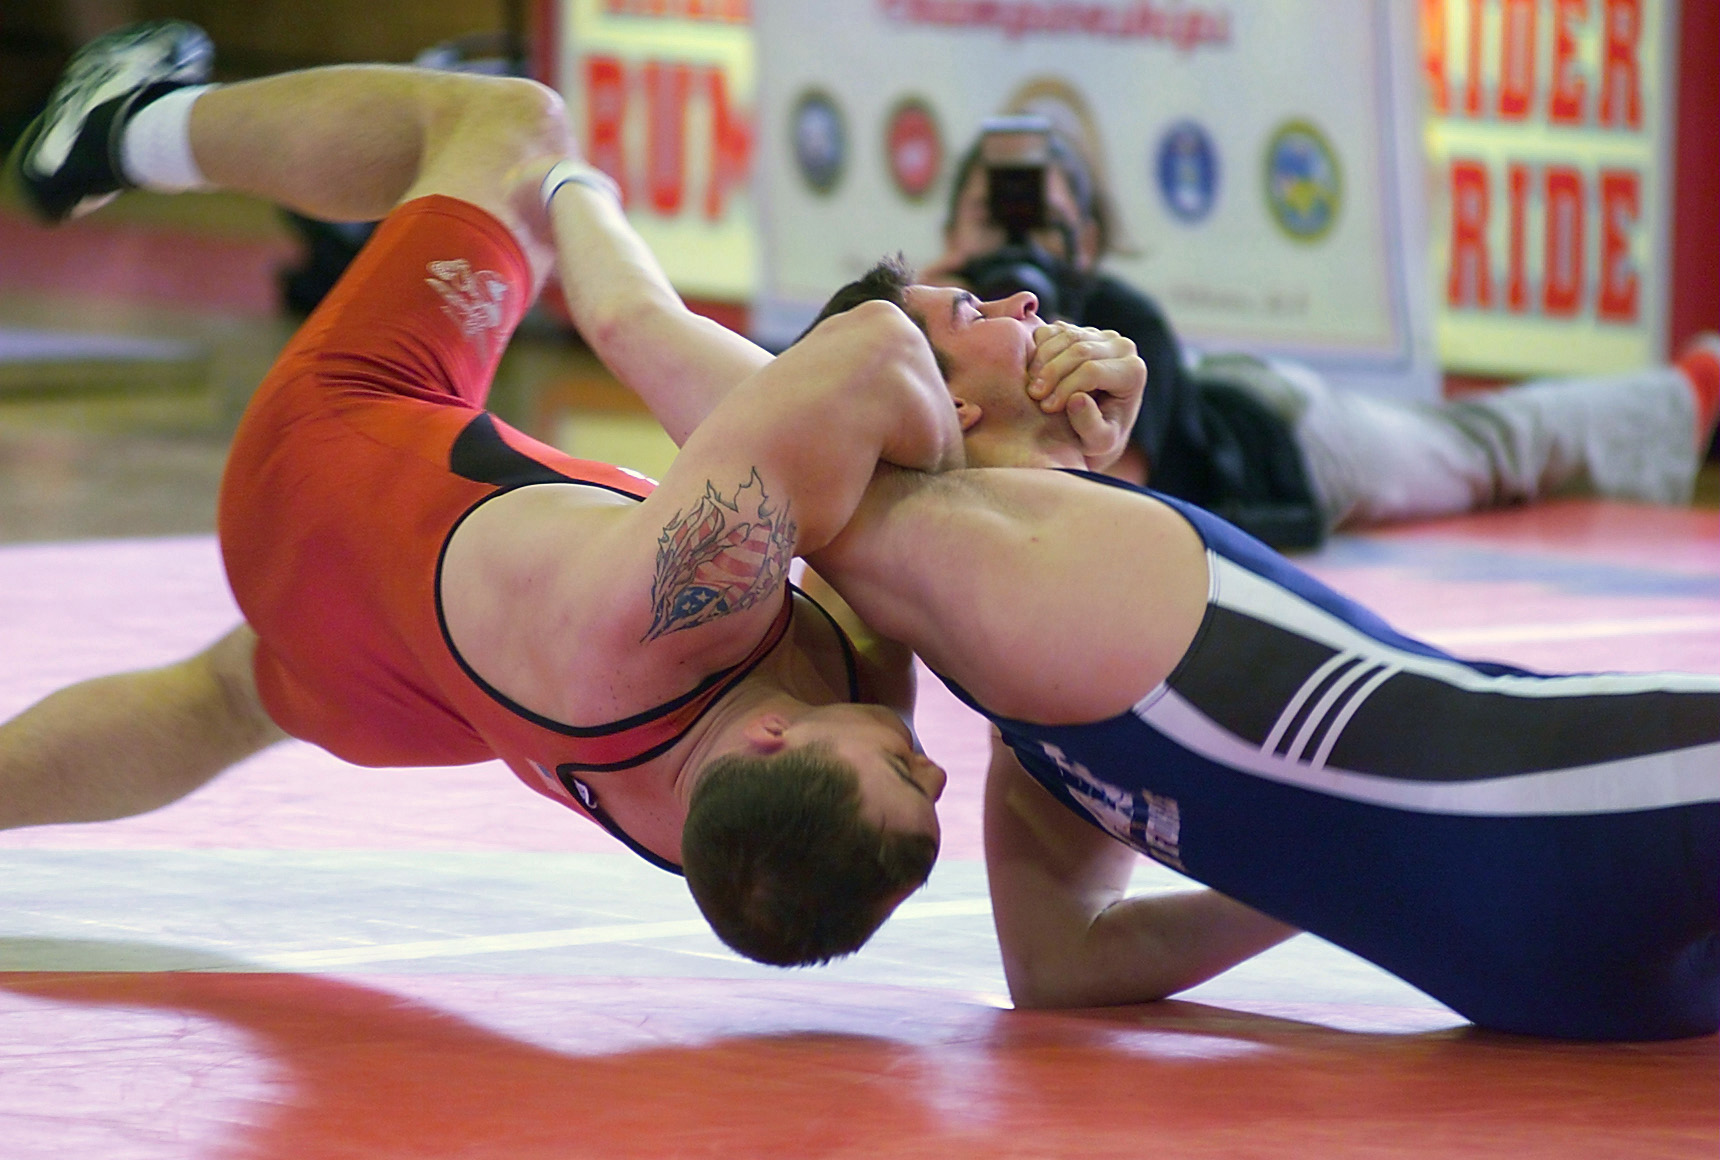 Freestyle wrestling throws freestyle wrestling